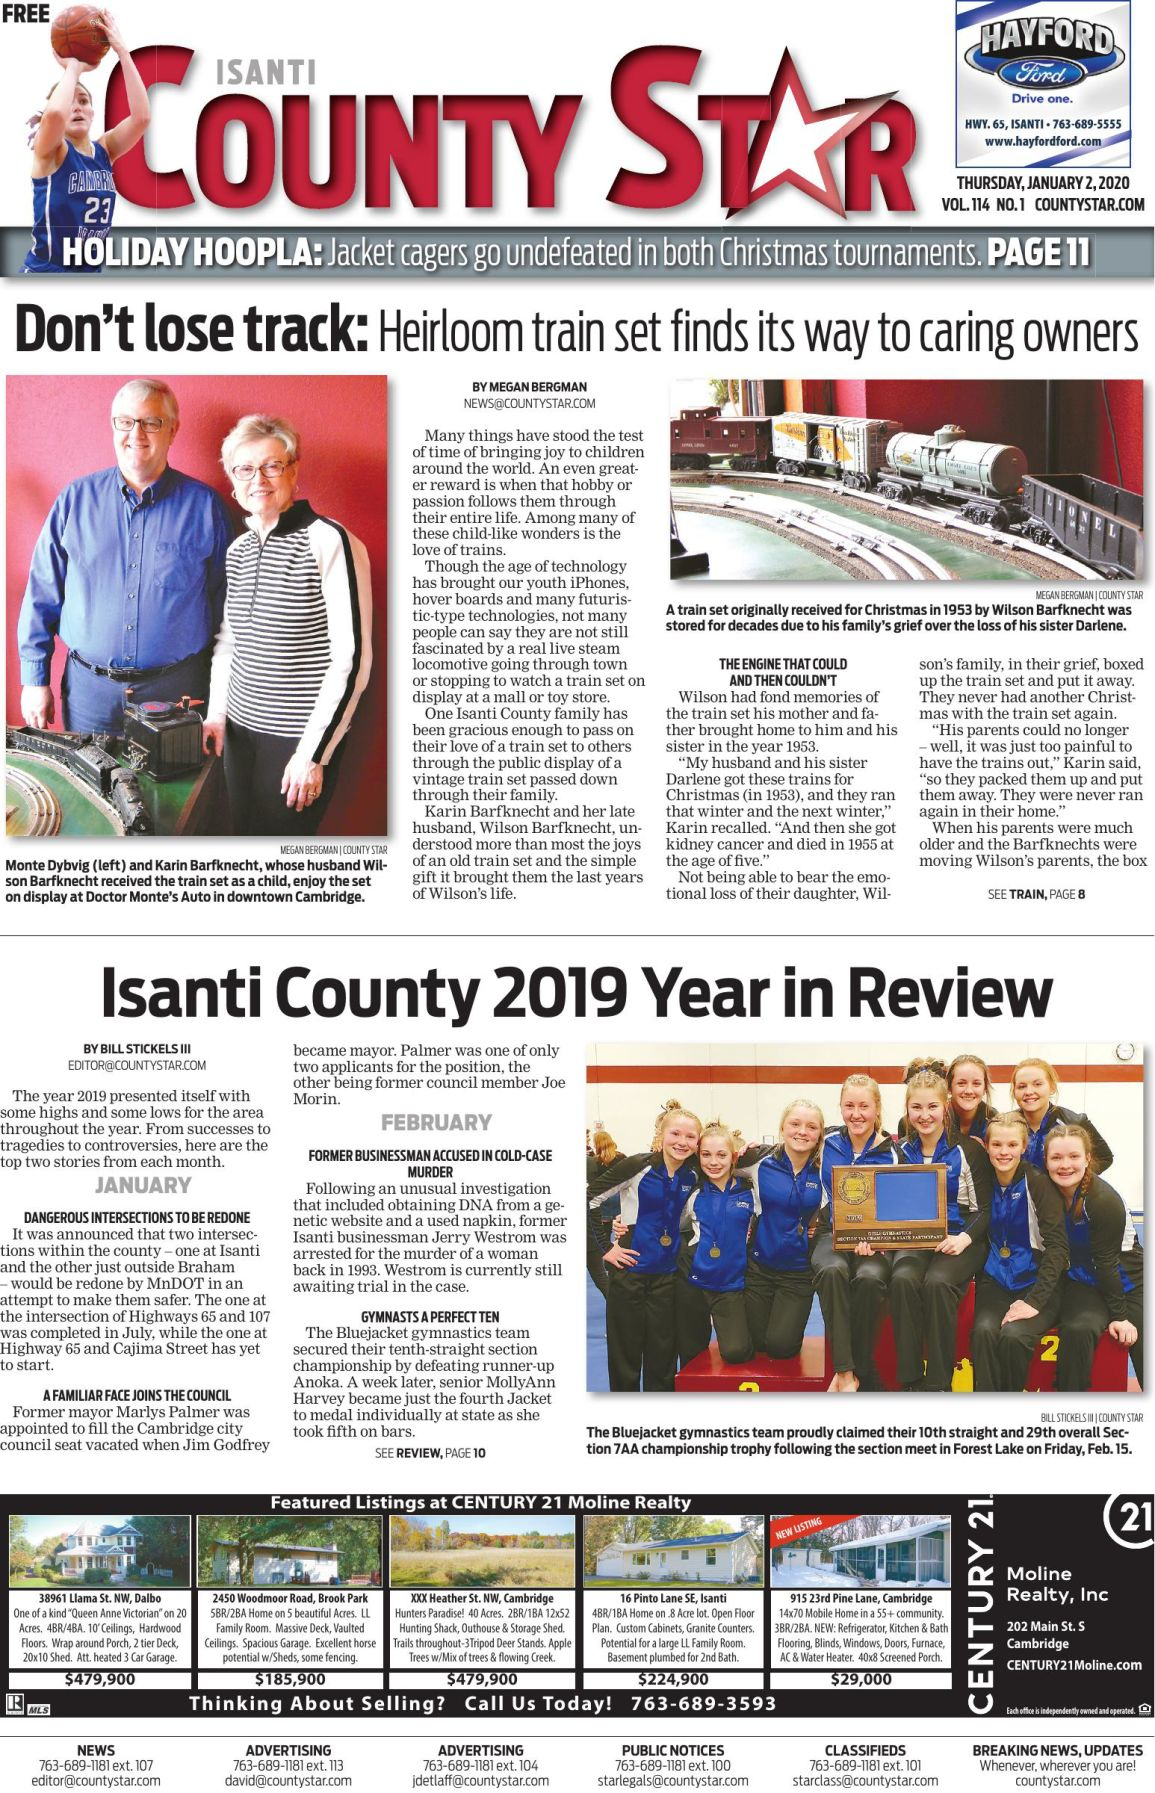 Isanti County Star January 2, 2020 e-edition